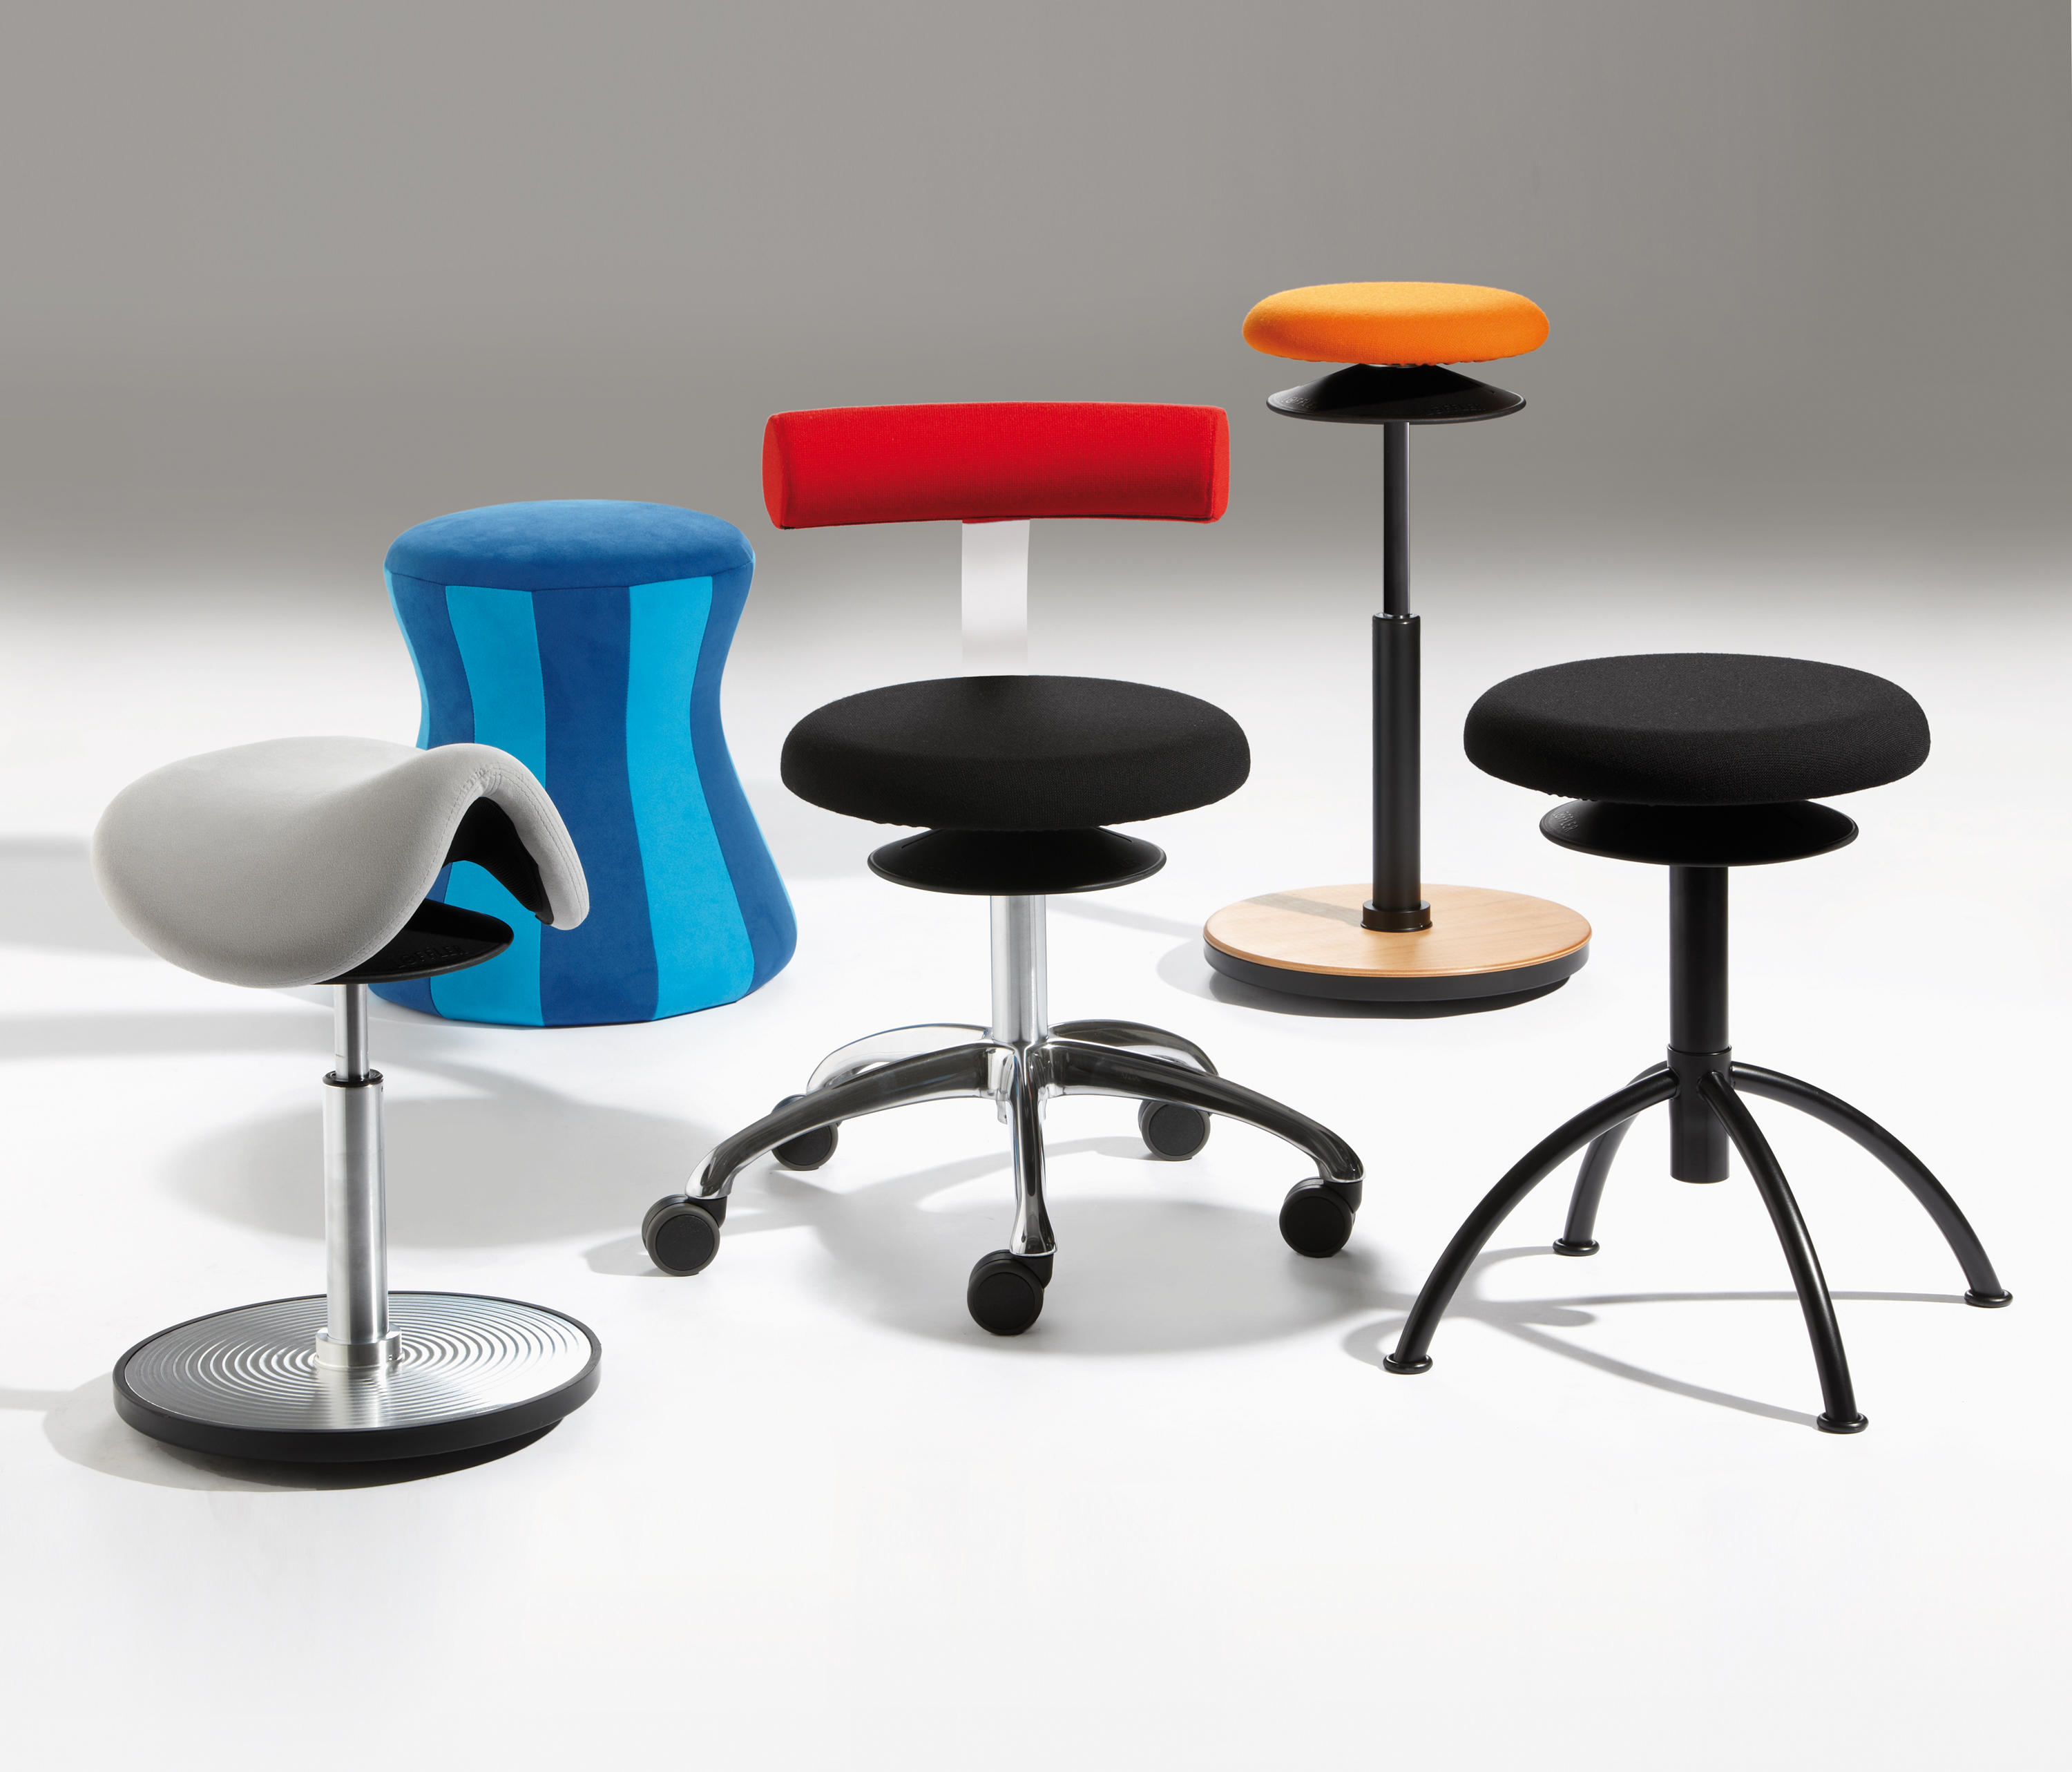 stand lean chair invisible trick prop ergo stools from lÖffler architonic